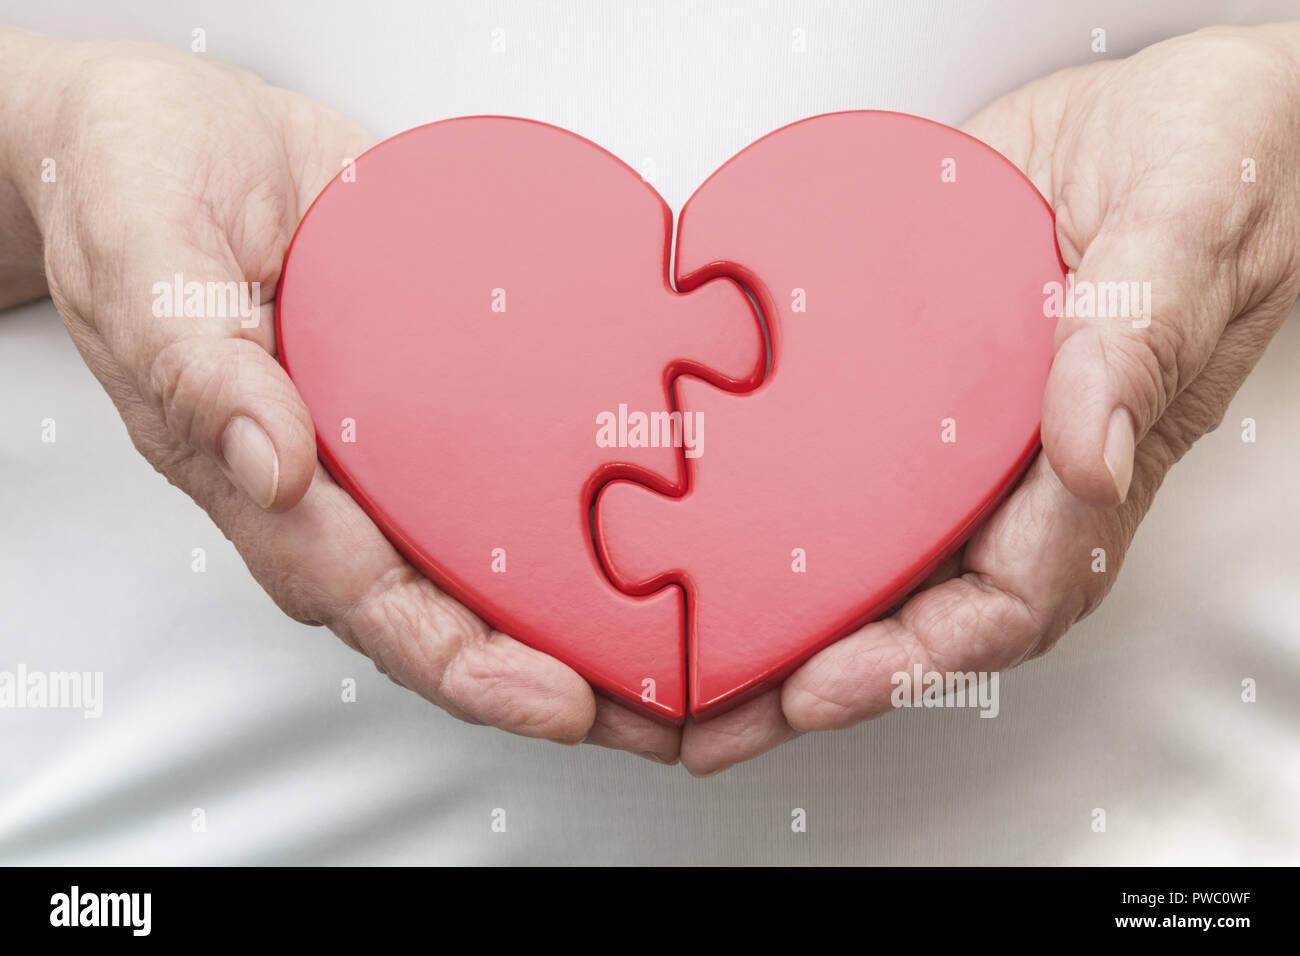 Two Halves of One Heart - Stock Image